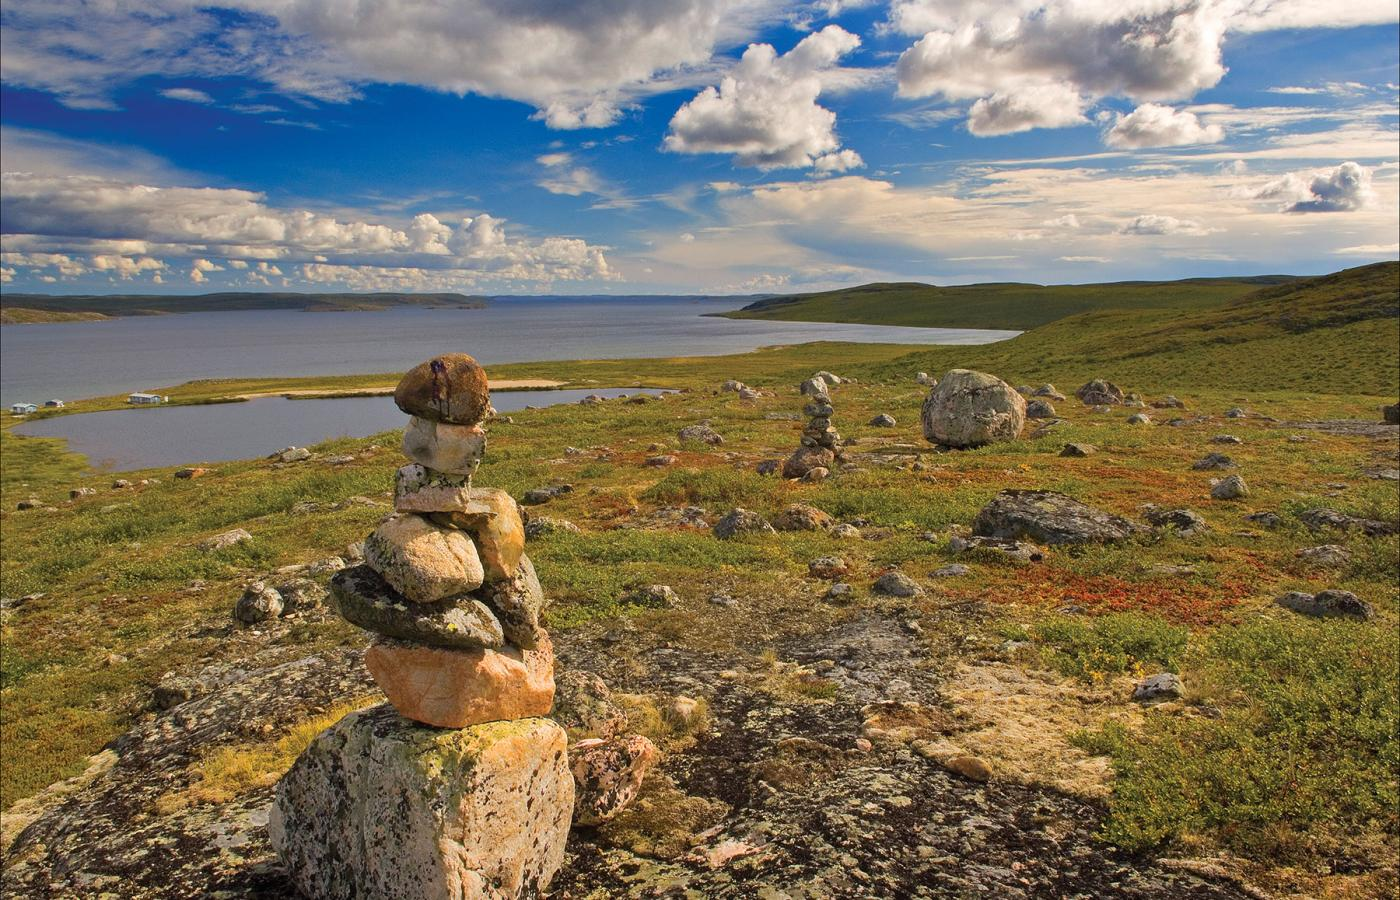 An Inukshuk stands on the tundra near the Arctic Ocean